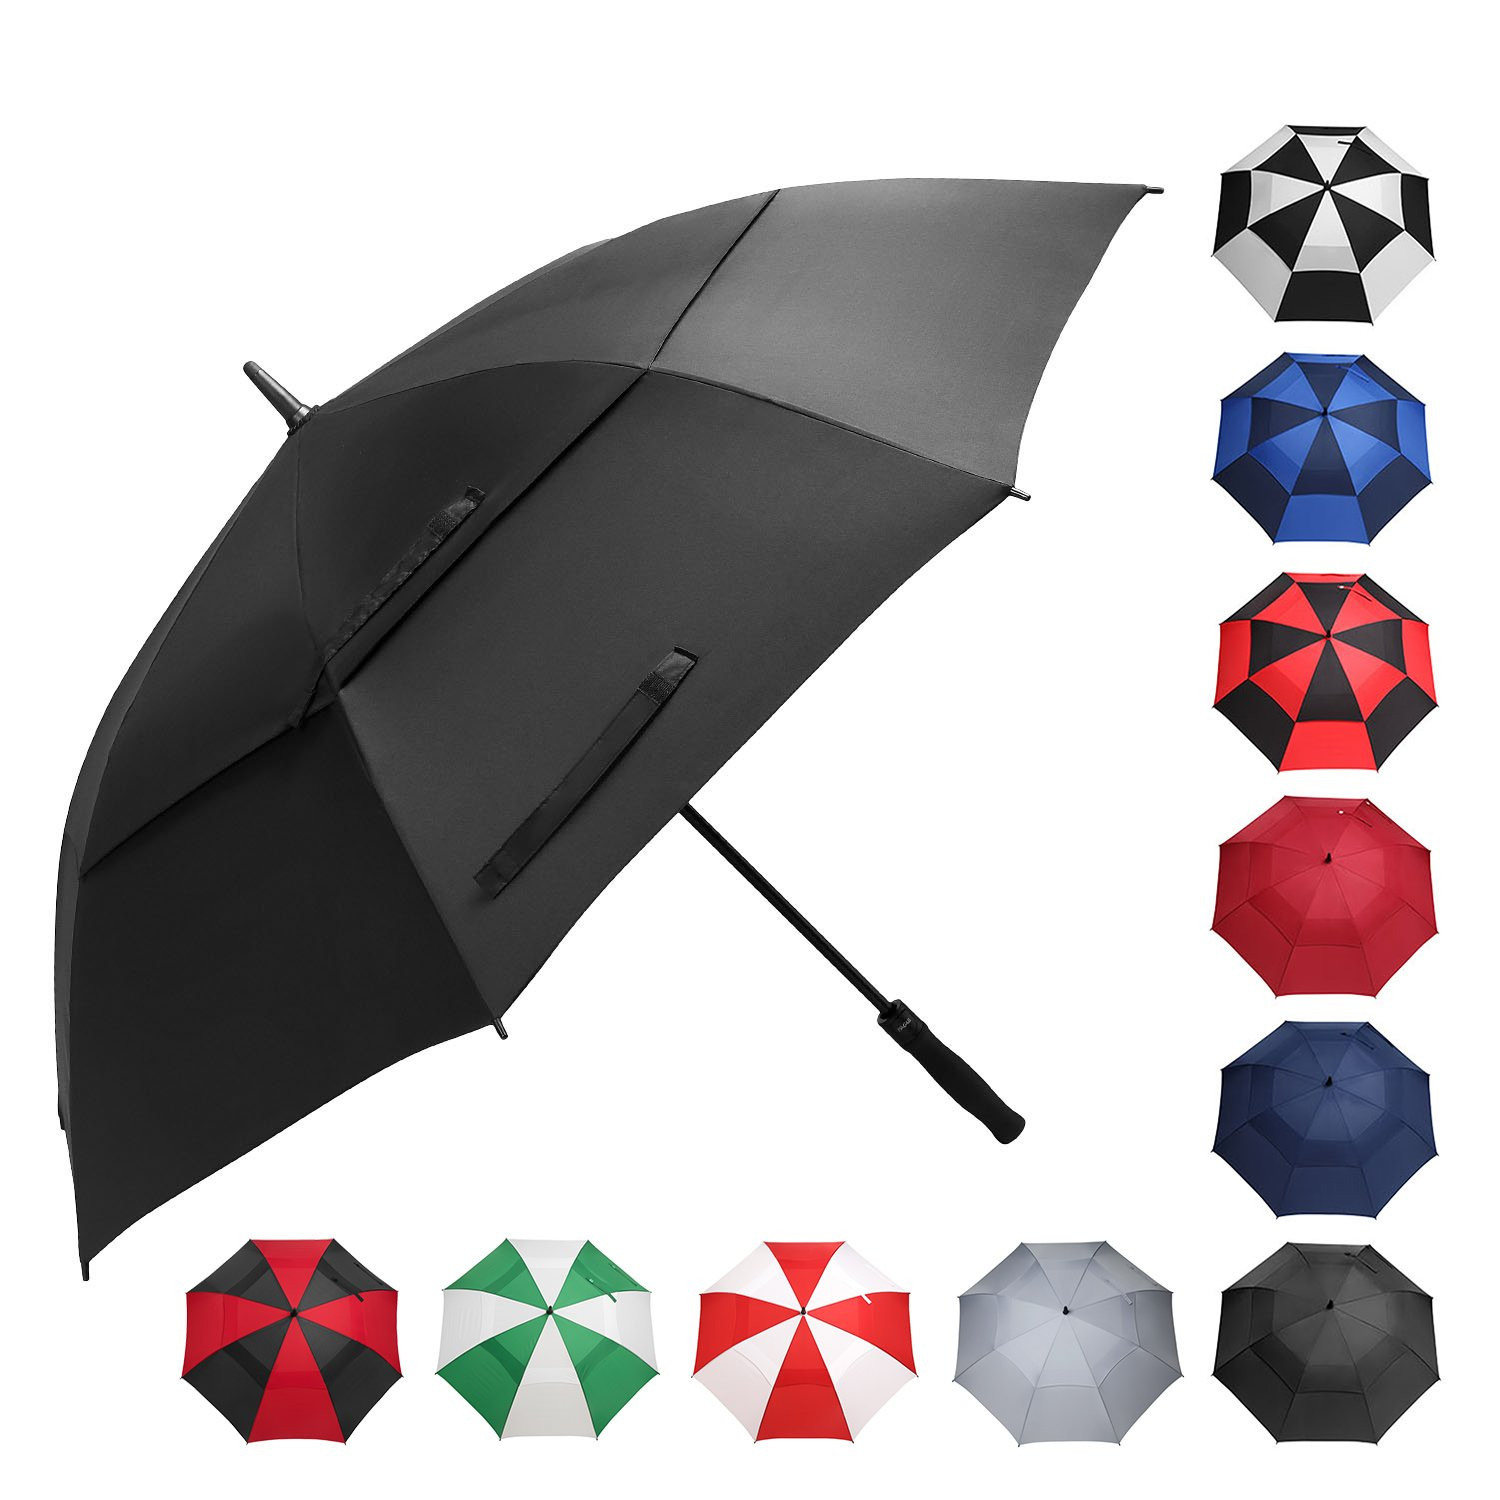 BAGAIL Golf Umbrella 68/62/58 Inch Large Oversize Double Canopy Vented Windproof Waterproof Automatic Open Stick Umbrellas for Men and Women (Black, 58 inch)